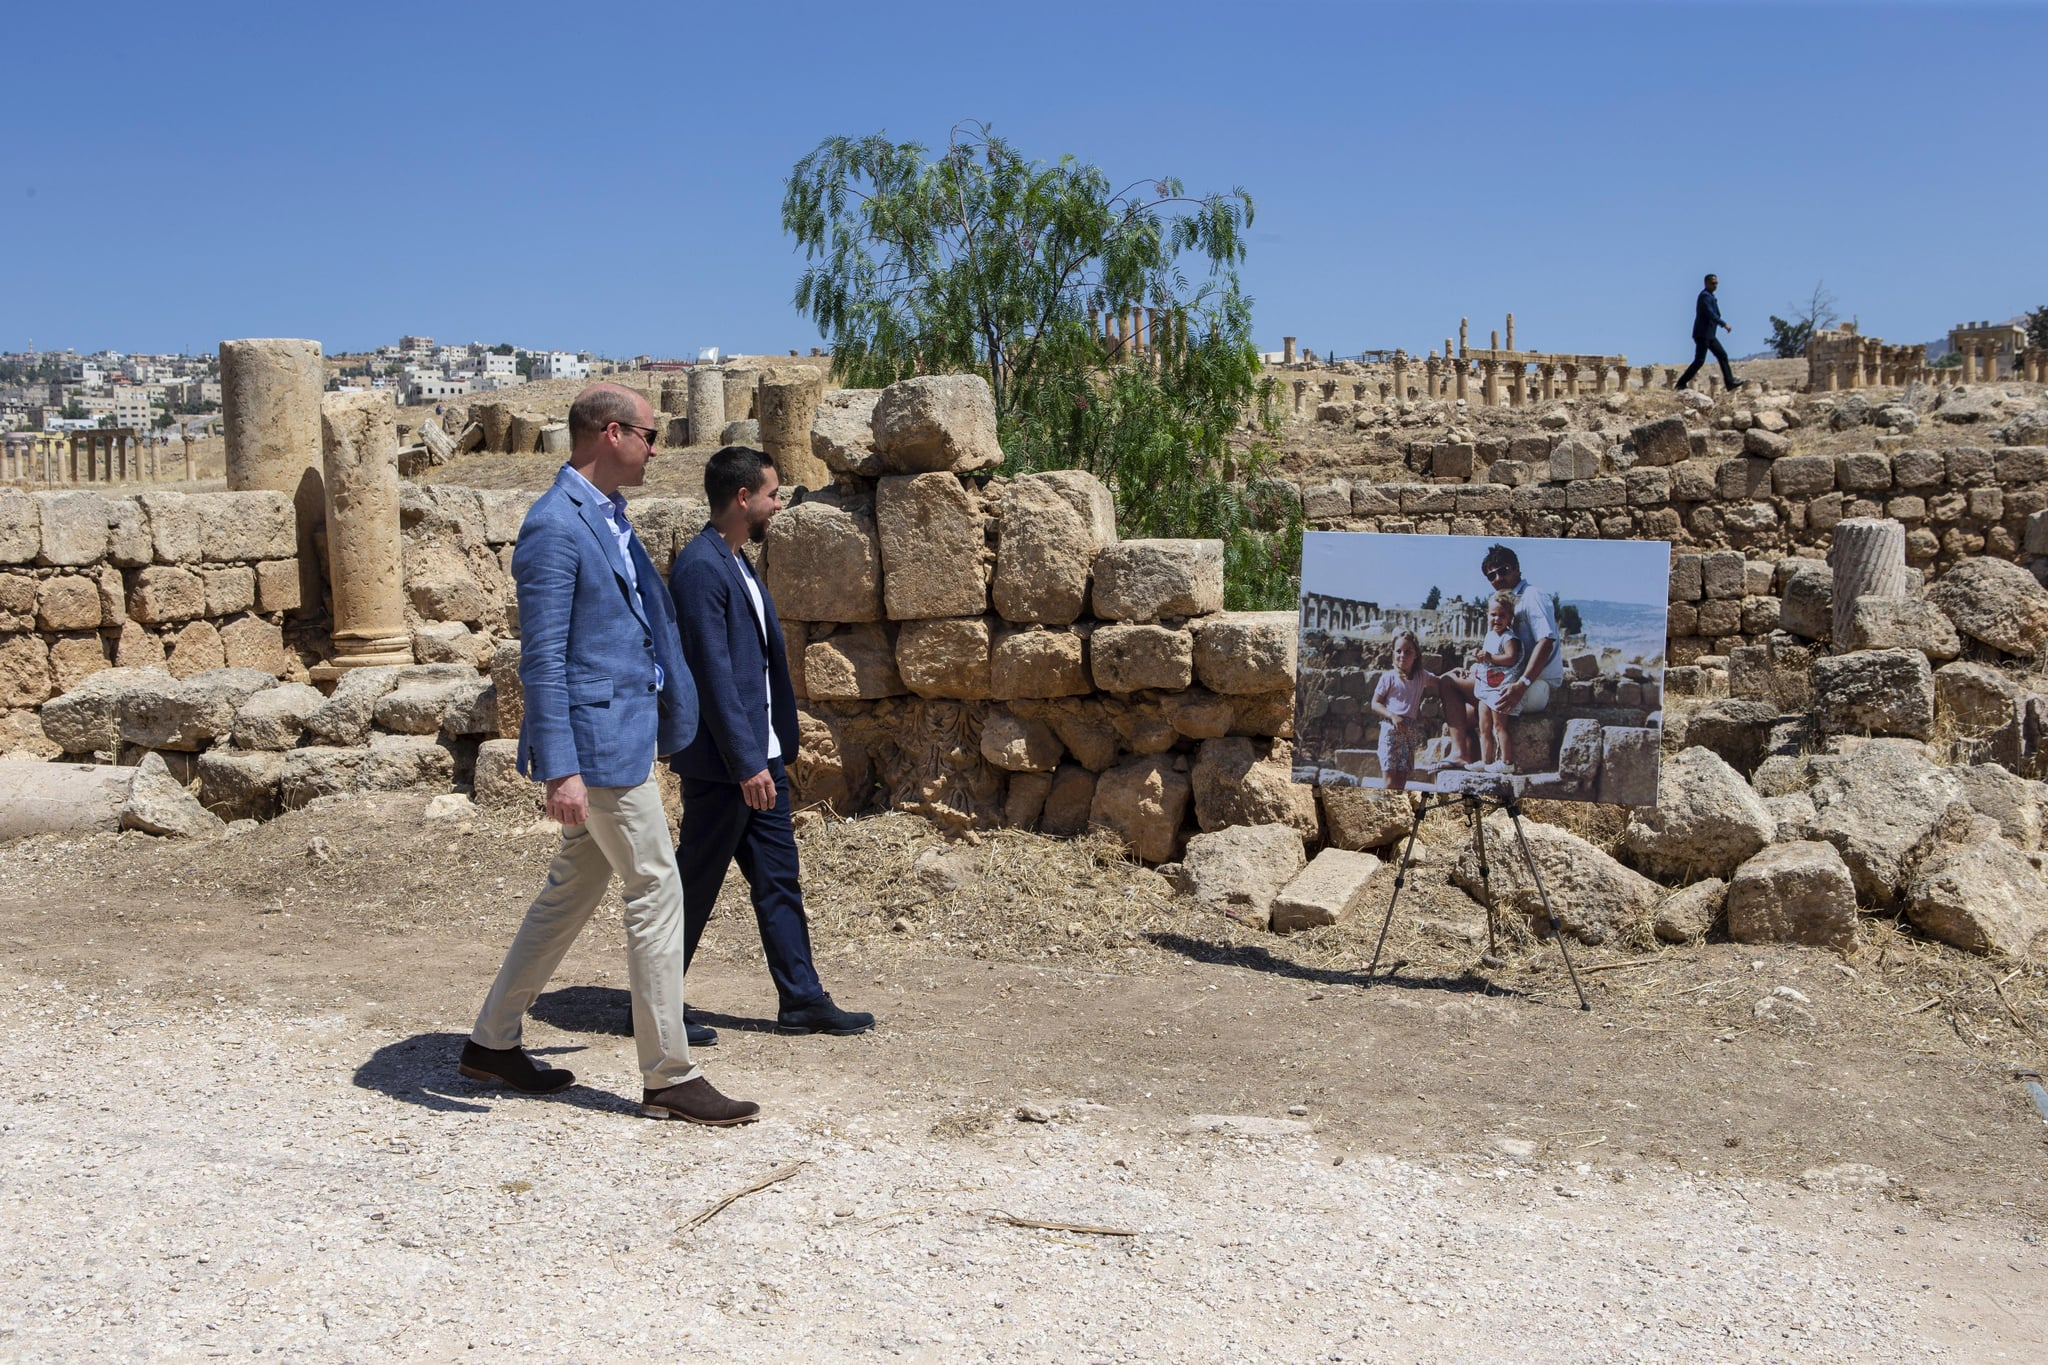 AMMAN, JORDAN - JUNE 25: Prince William, Duke of Cambridge and Crown Prince Hussein of Jordan walk past an enlarged photo of Catherine, Duchess of Cambridge in her youth with her father on a family holiday, as they visit the Jerash archaeological site on June 25, 2018 in Amman, Jordan. (Photo by Ian Vogler - Pool/Getty Images)